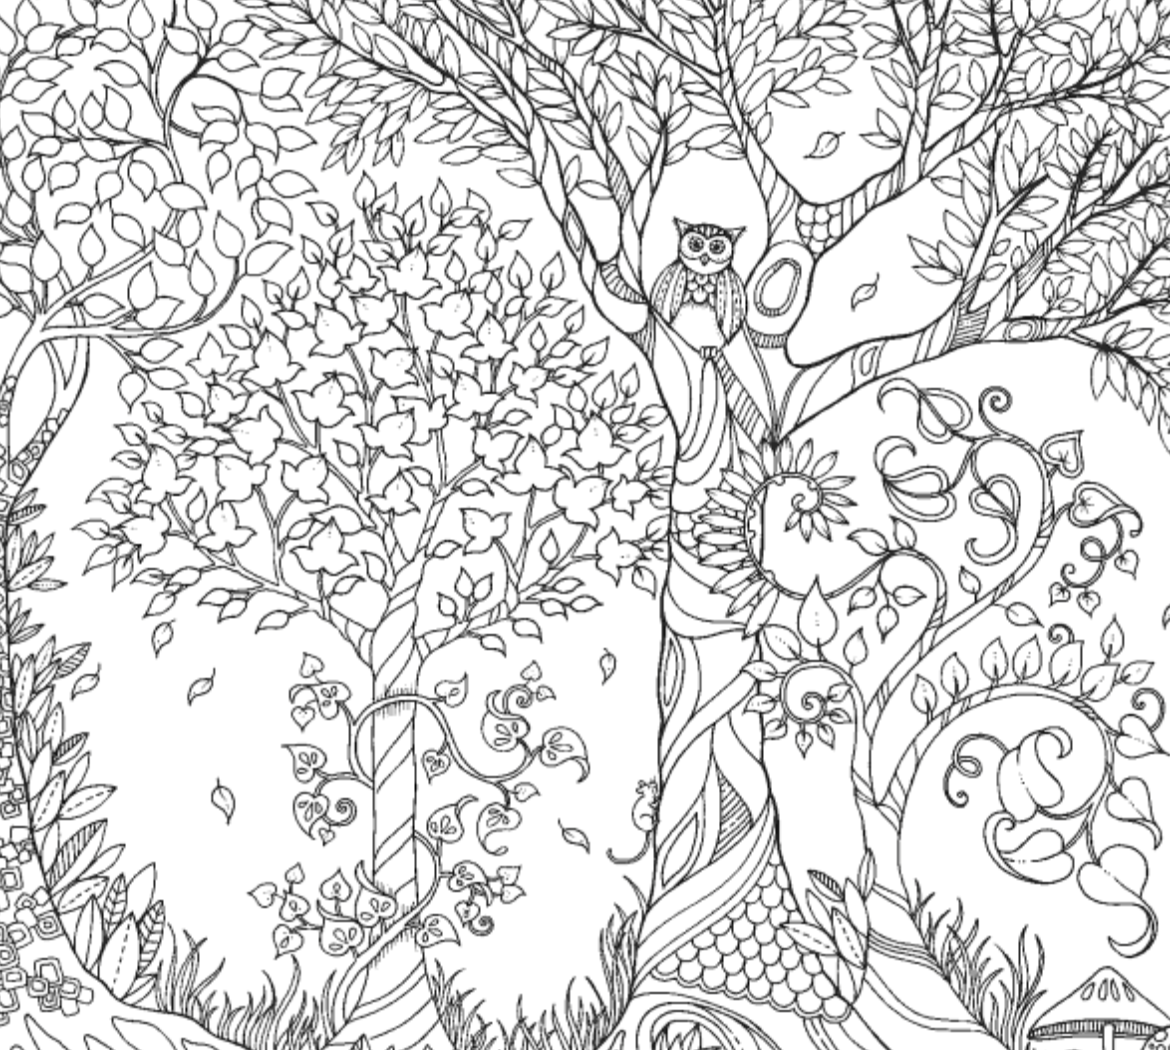 Unique Larm Chair Du Monde Secret Garden Coloring Book Review With Fetching So Now Its Those Colouring Books At The Top Of The Amazon Bestseller  List Wow Za Wow Za Wow Za You Know Its Pretty Clear That Civilisation  Gradually  With Alluring Garden Hose Quick Connect Fittings Also Sheffield Botanical Garden In Addition Nude In The Garden Pics And Rose Garden Restaurant As Well As Cube Rattan Garden Furniture Additionally Mini Garden Shed From Tragicosmicblogspotcom With   Fetching Larm Chair Du Monde Secret Garden Coloring Book Review With Alluring So Now Its Those Colouring Books At The Top Of The Amazon Bestseller  List Wow Za Wow Za Wow Za You Know Its Pretty Clear That Civilisation  Gradually  And Unique Garden Hose Quick Connect Fittings Also Sheffield Botanical Garden In Addition Nude In The Garden Pics From Tragicosmicblogspotcom